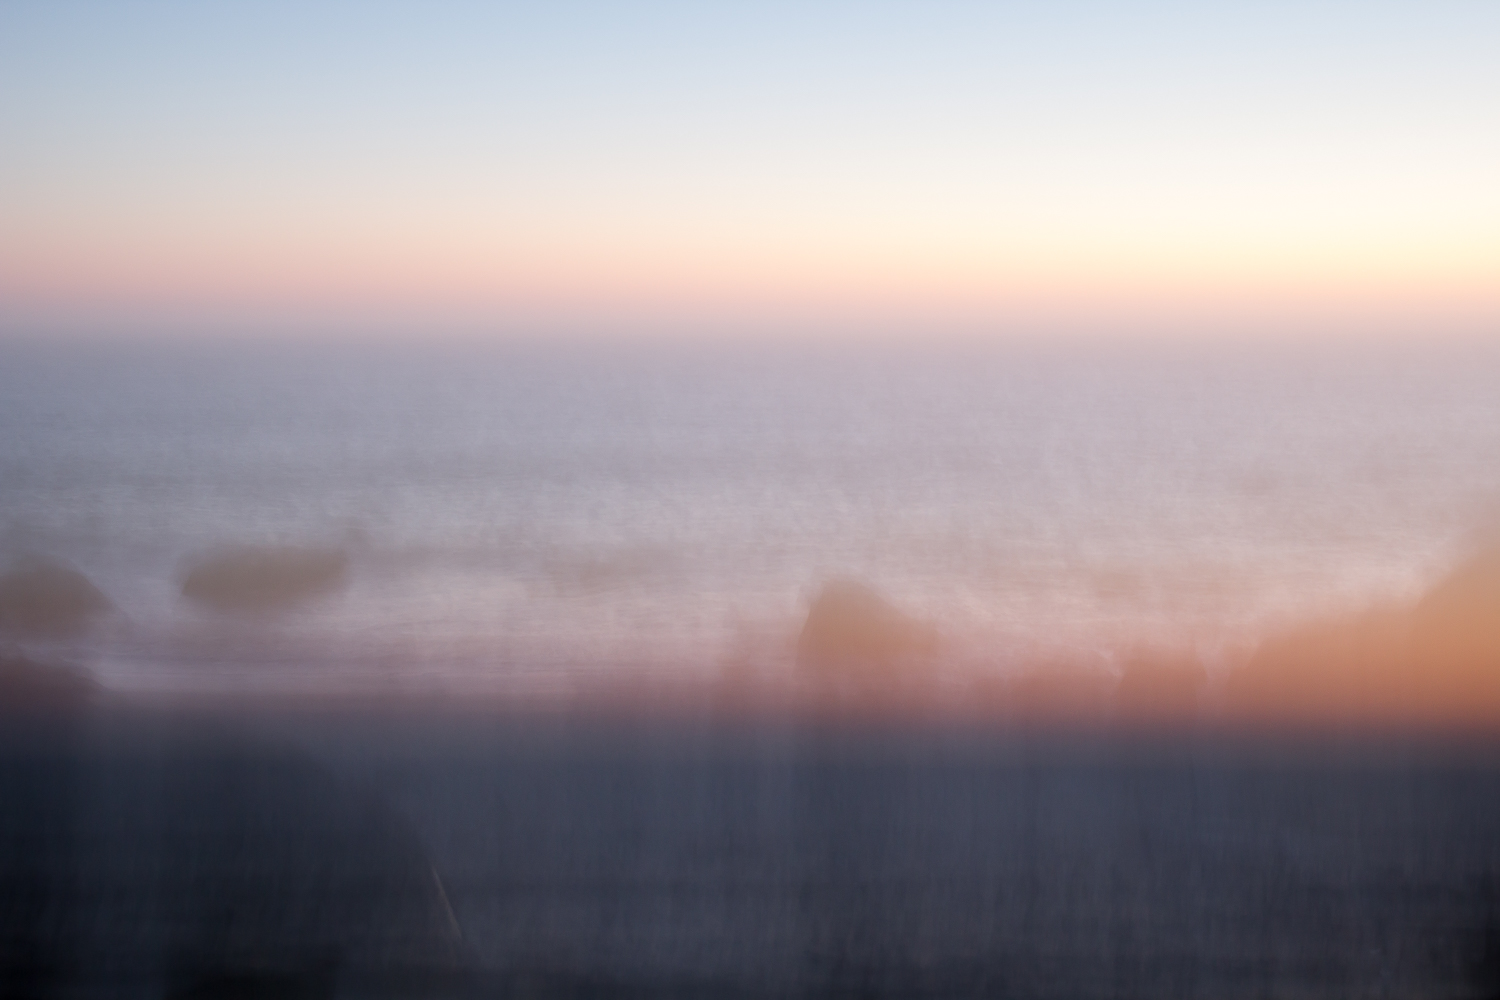 bodega head abstract 3.jpg